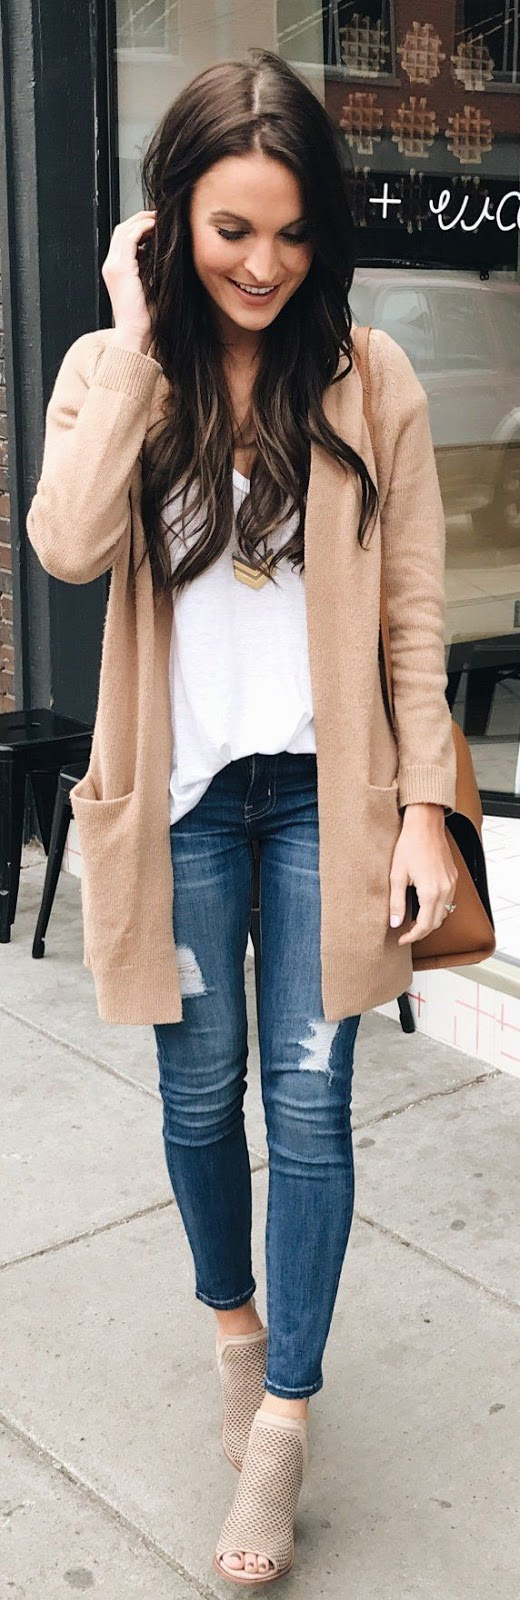 what to wear with a cardigan : white top + bag + ripped jeans